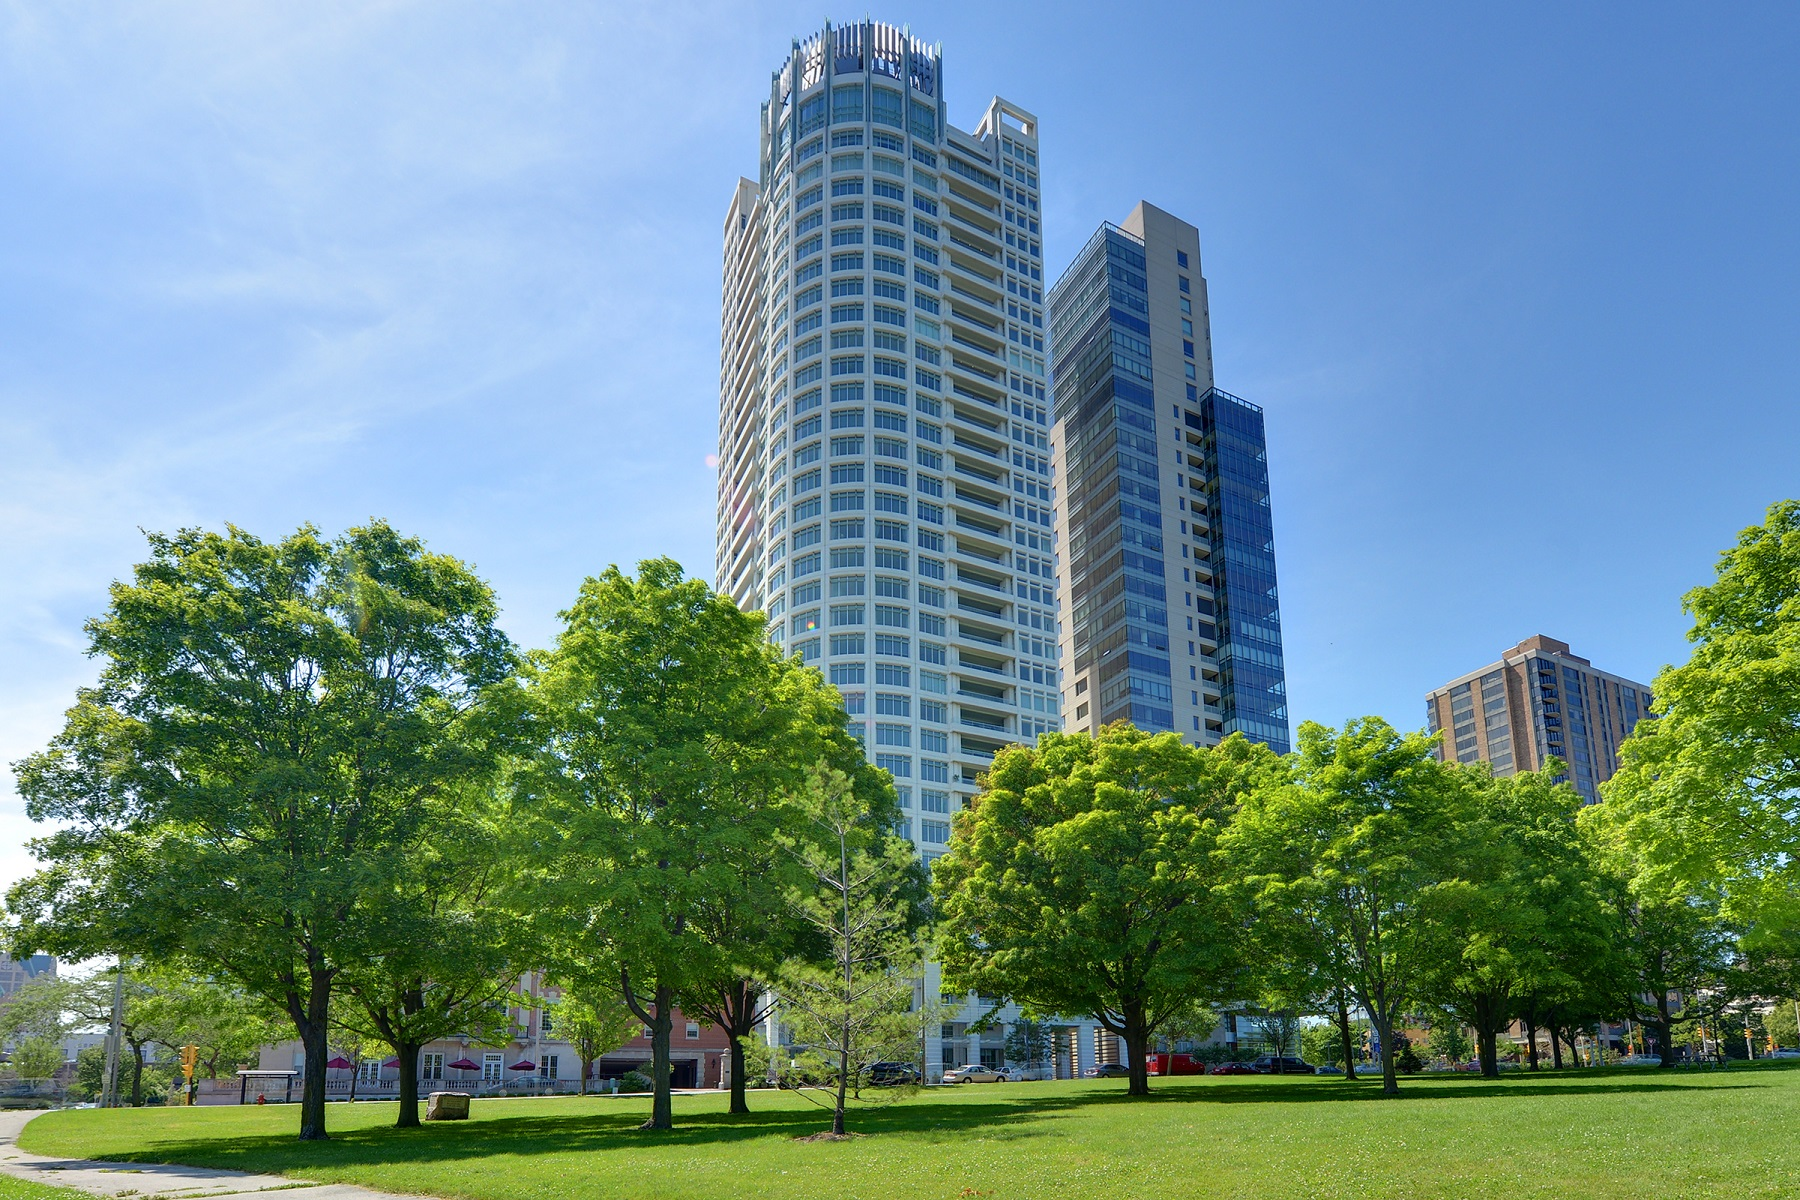 Condominium for Sale at University Club Tower 825 N. Prospect Avenue Milwaukee, Wisconsin 53202 United States